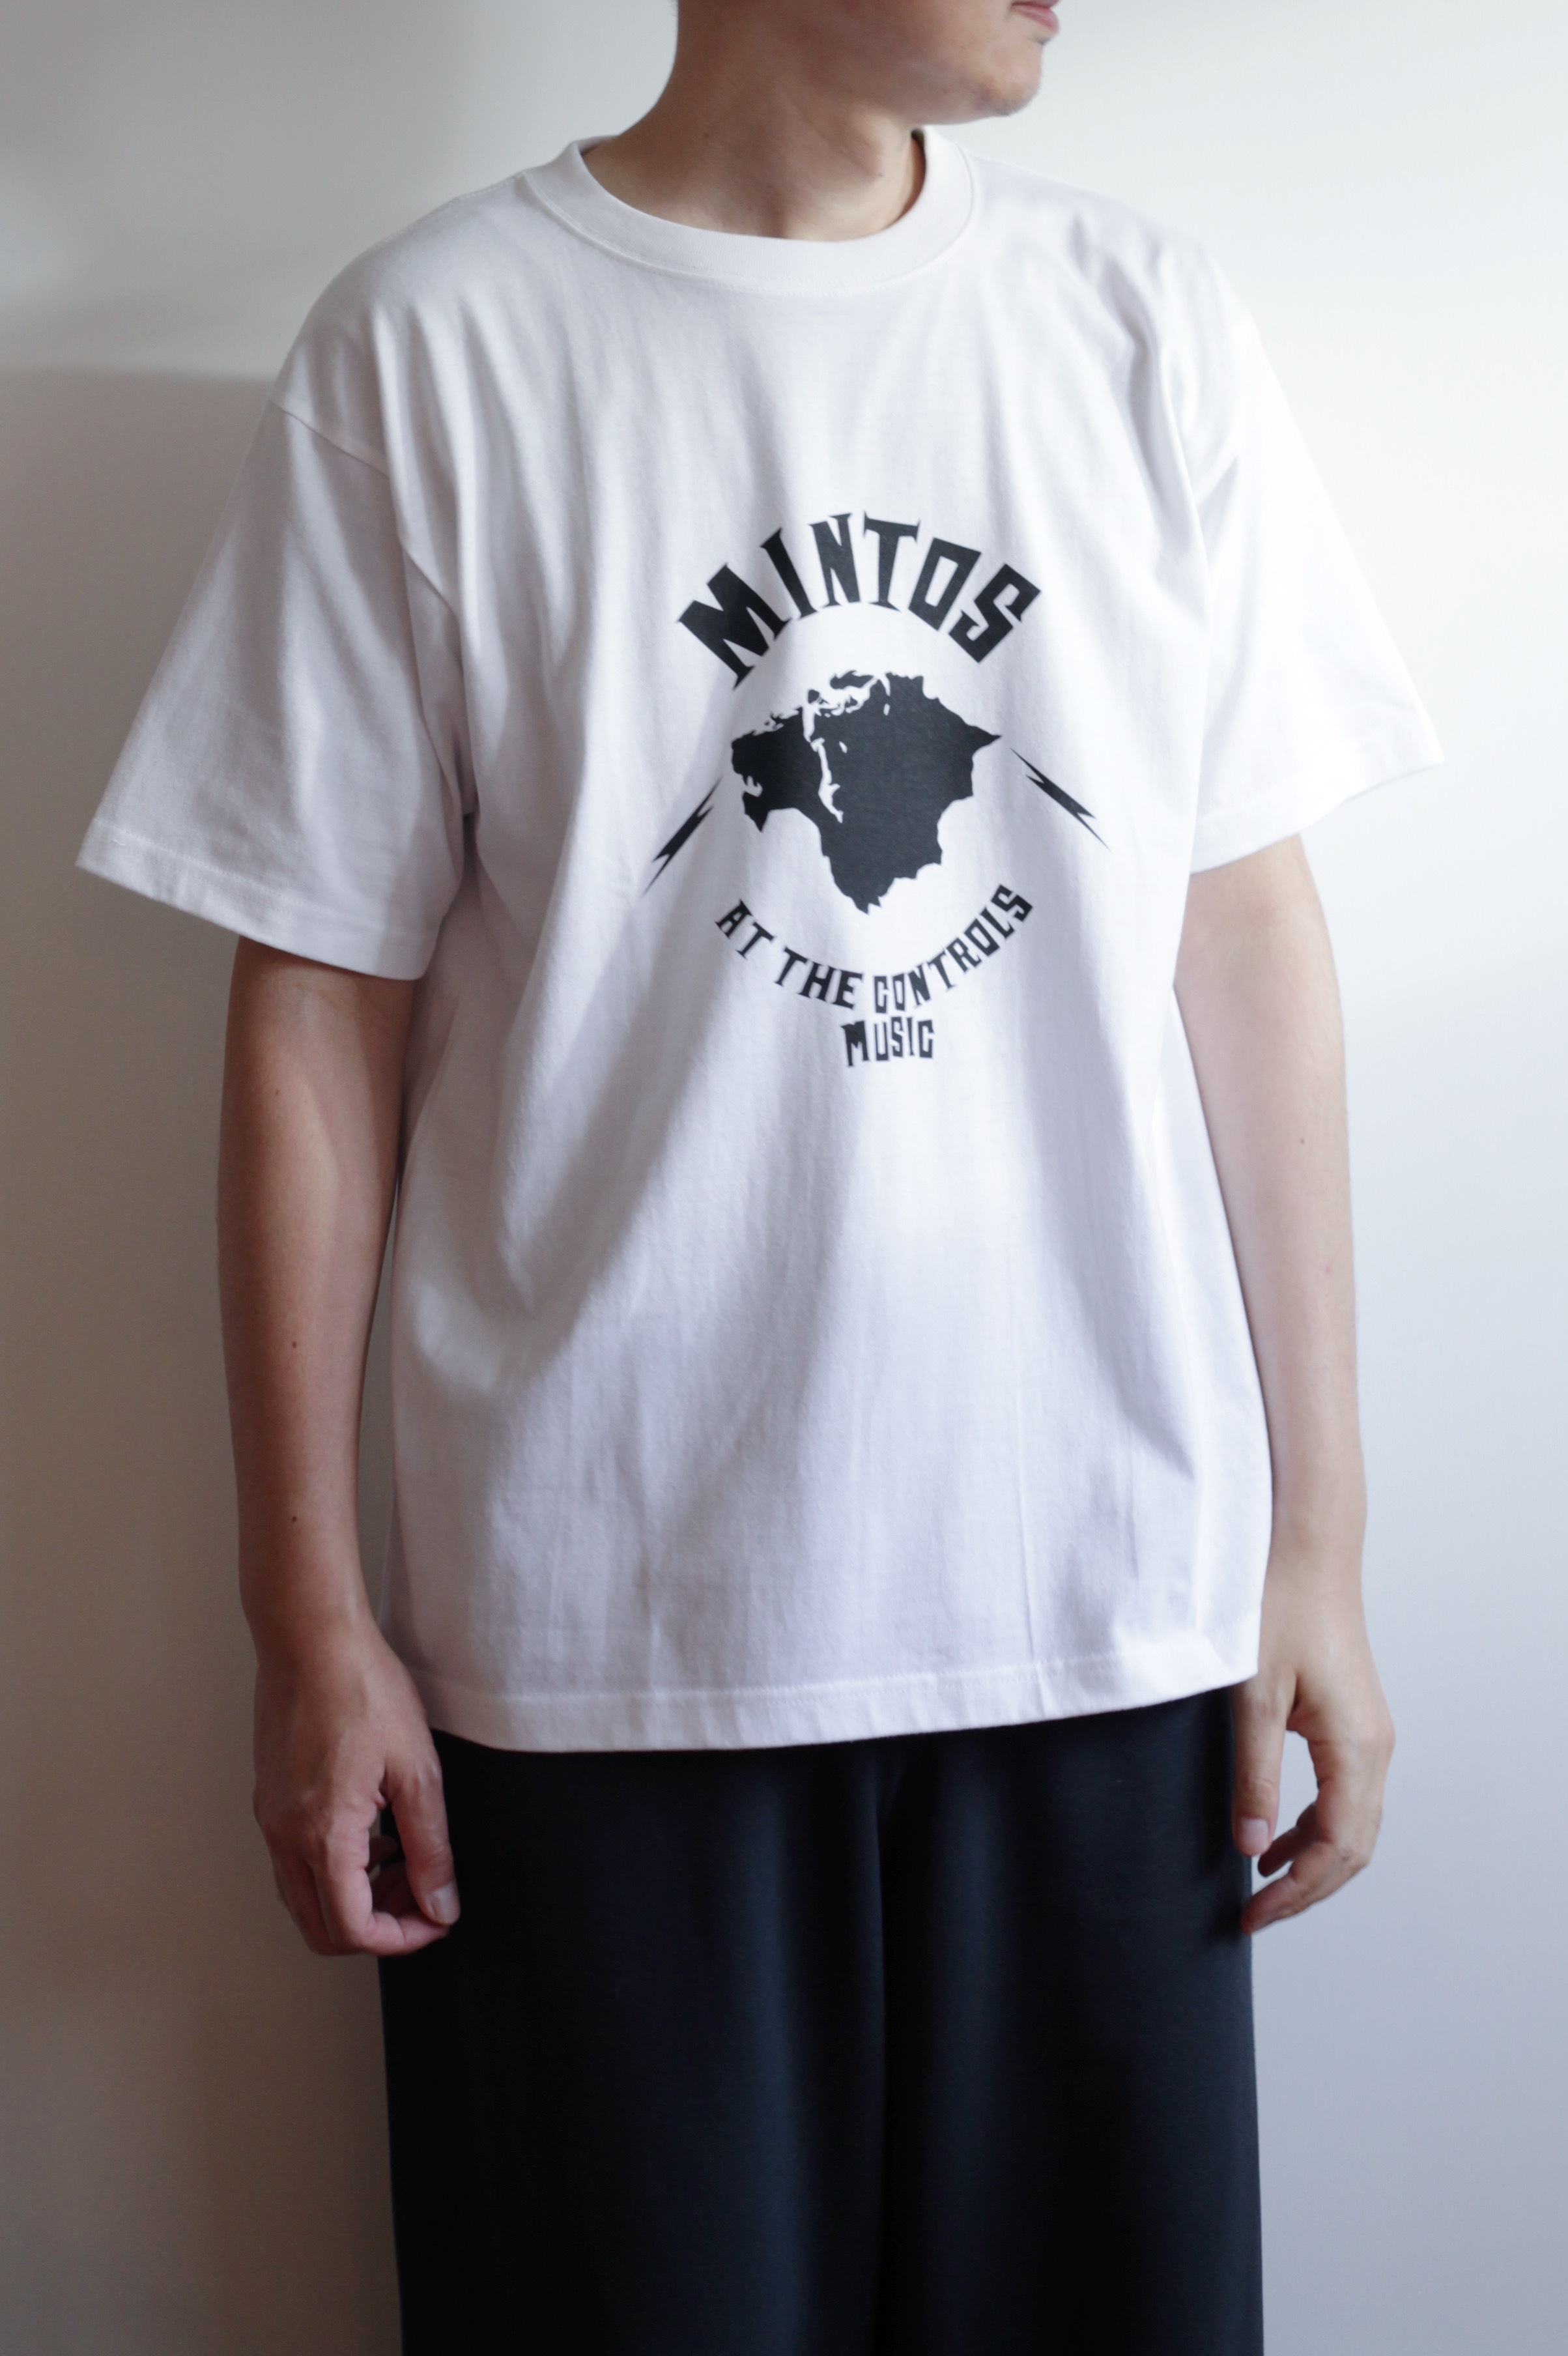 【POET MEETS DUBWISE(ポエトミーツダブワイズ)】Mintos T-Shirt